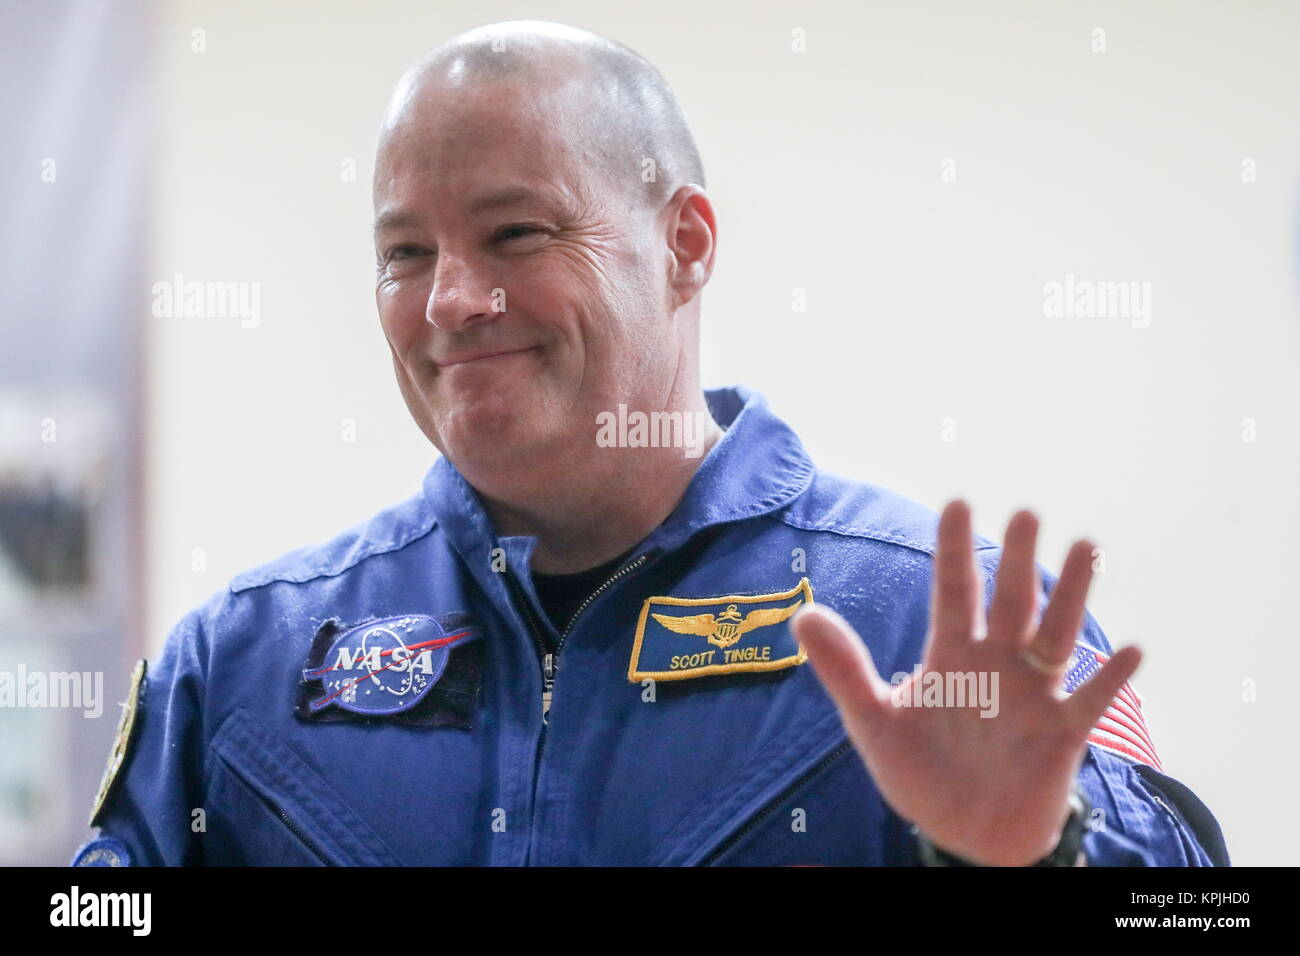 Baikonur, Kazakhstan. 16th Dec, 2017. A member of ISS Expedition 54/55 prime crew, US astronaut Scott Tingle of - Stock Image